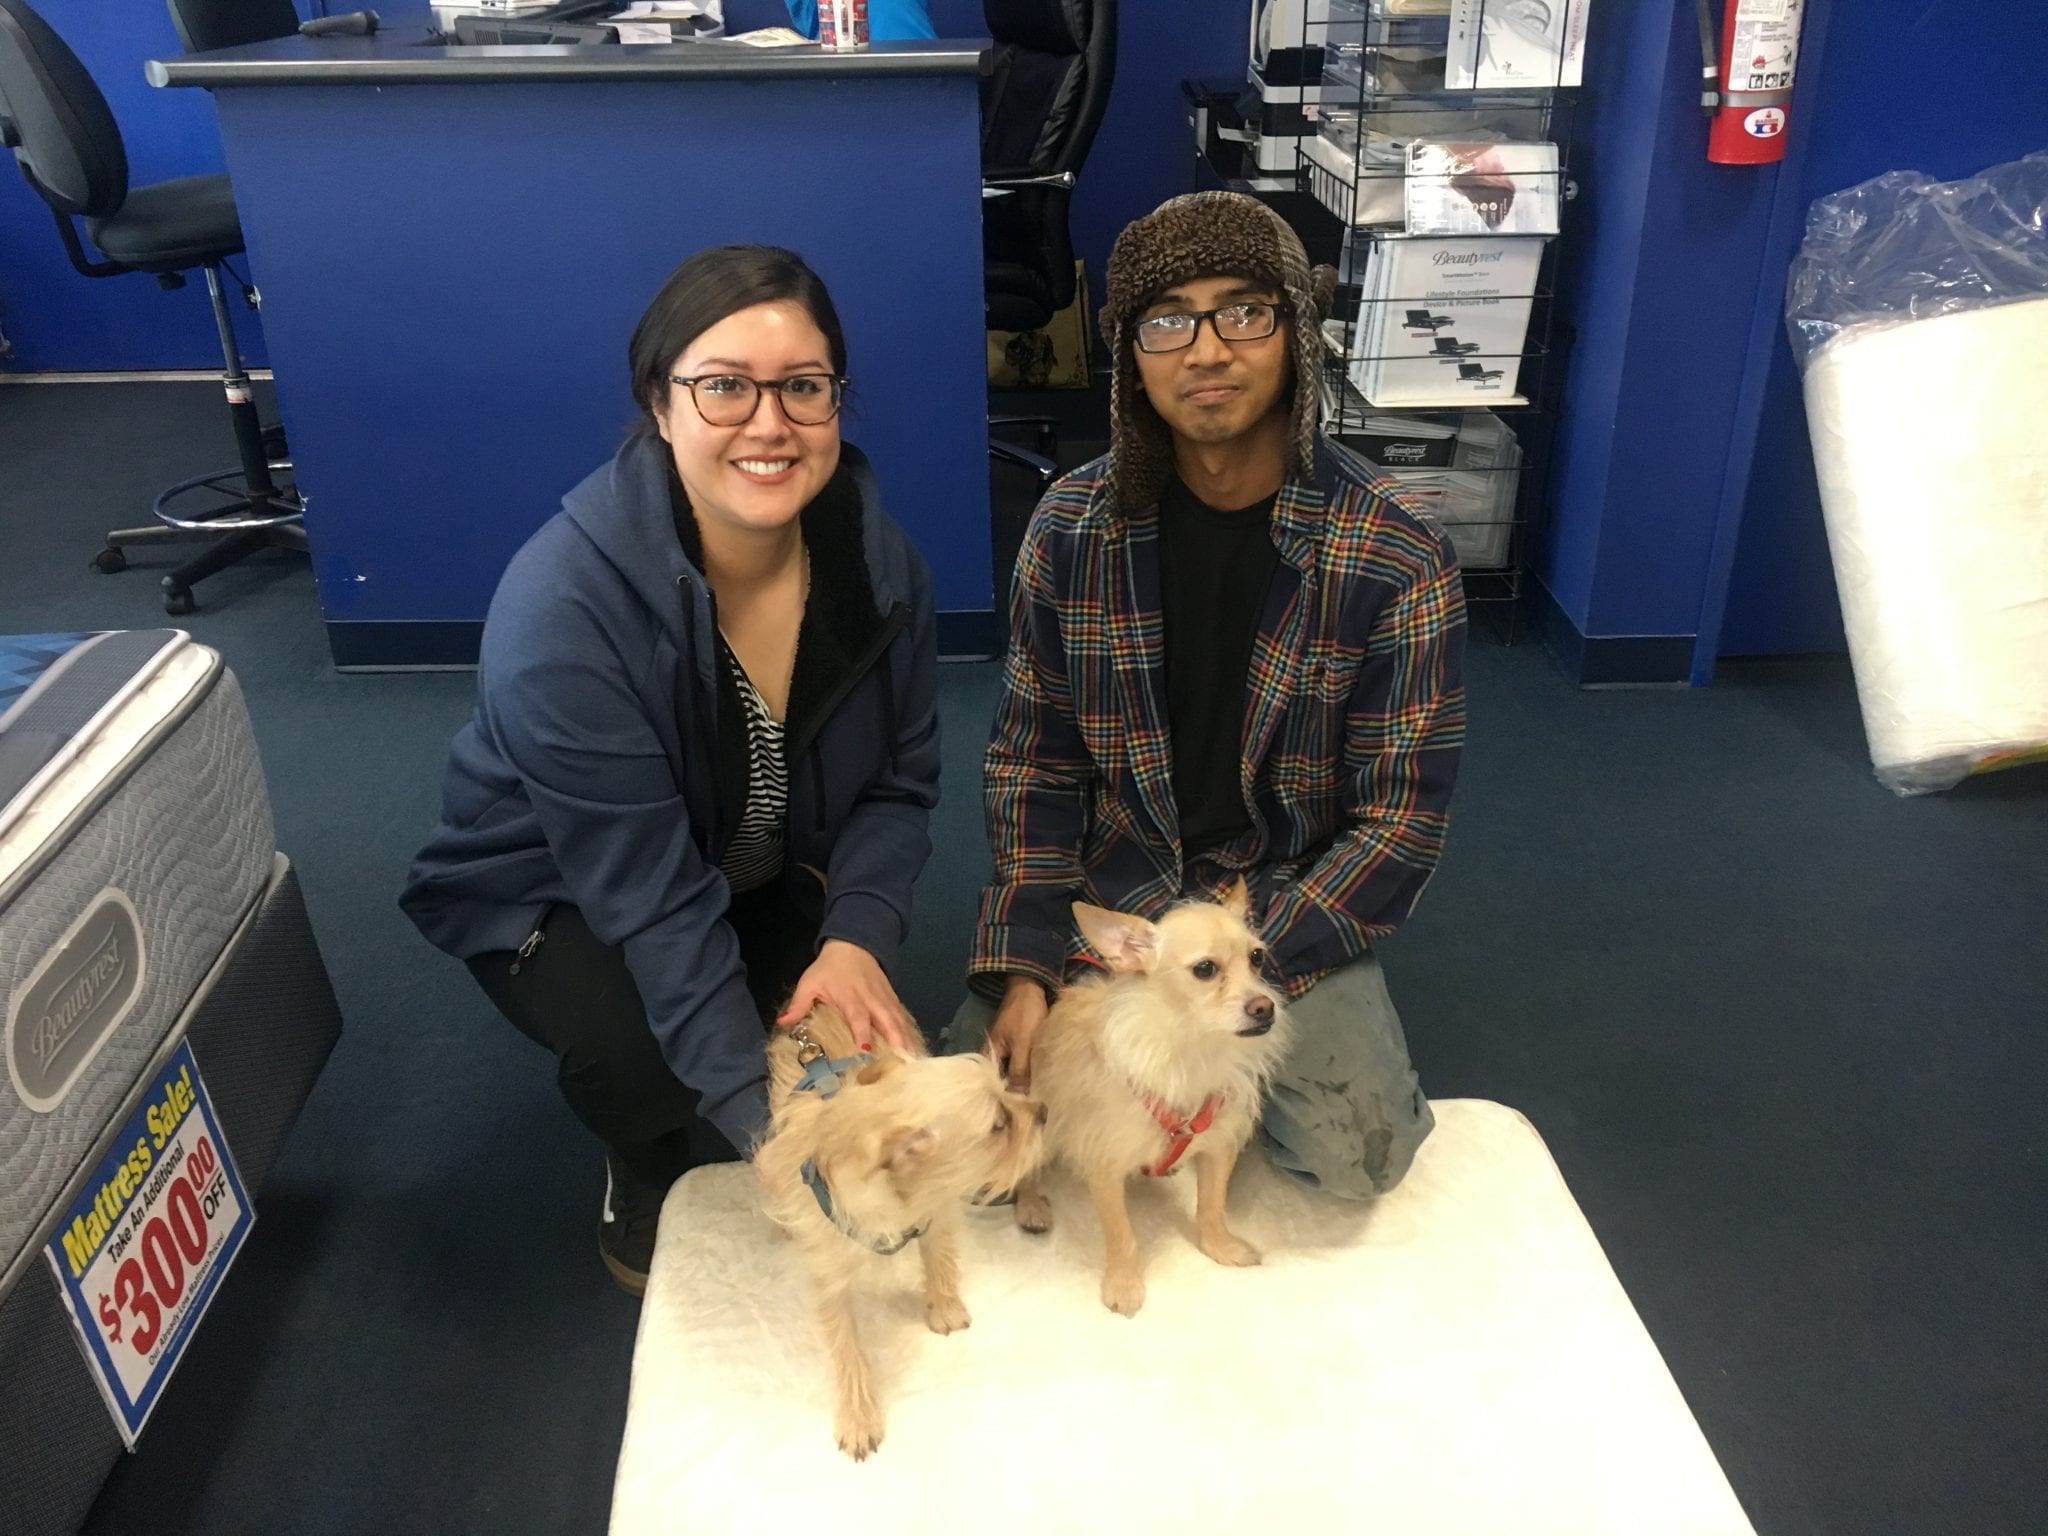 Two dogs that were adopted from NSPCA and were given free pet beds from Best Mattress in Las Vegas